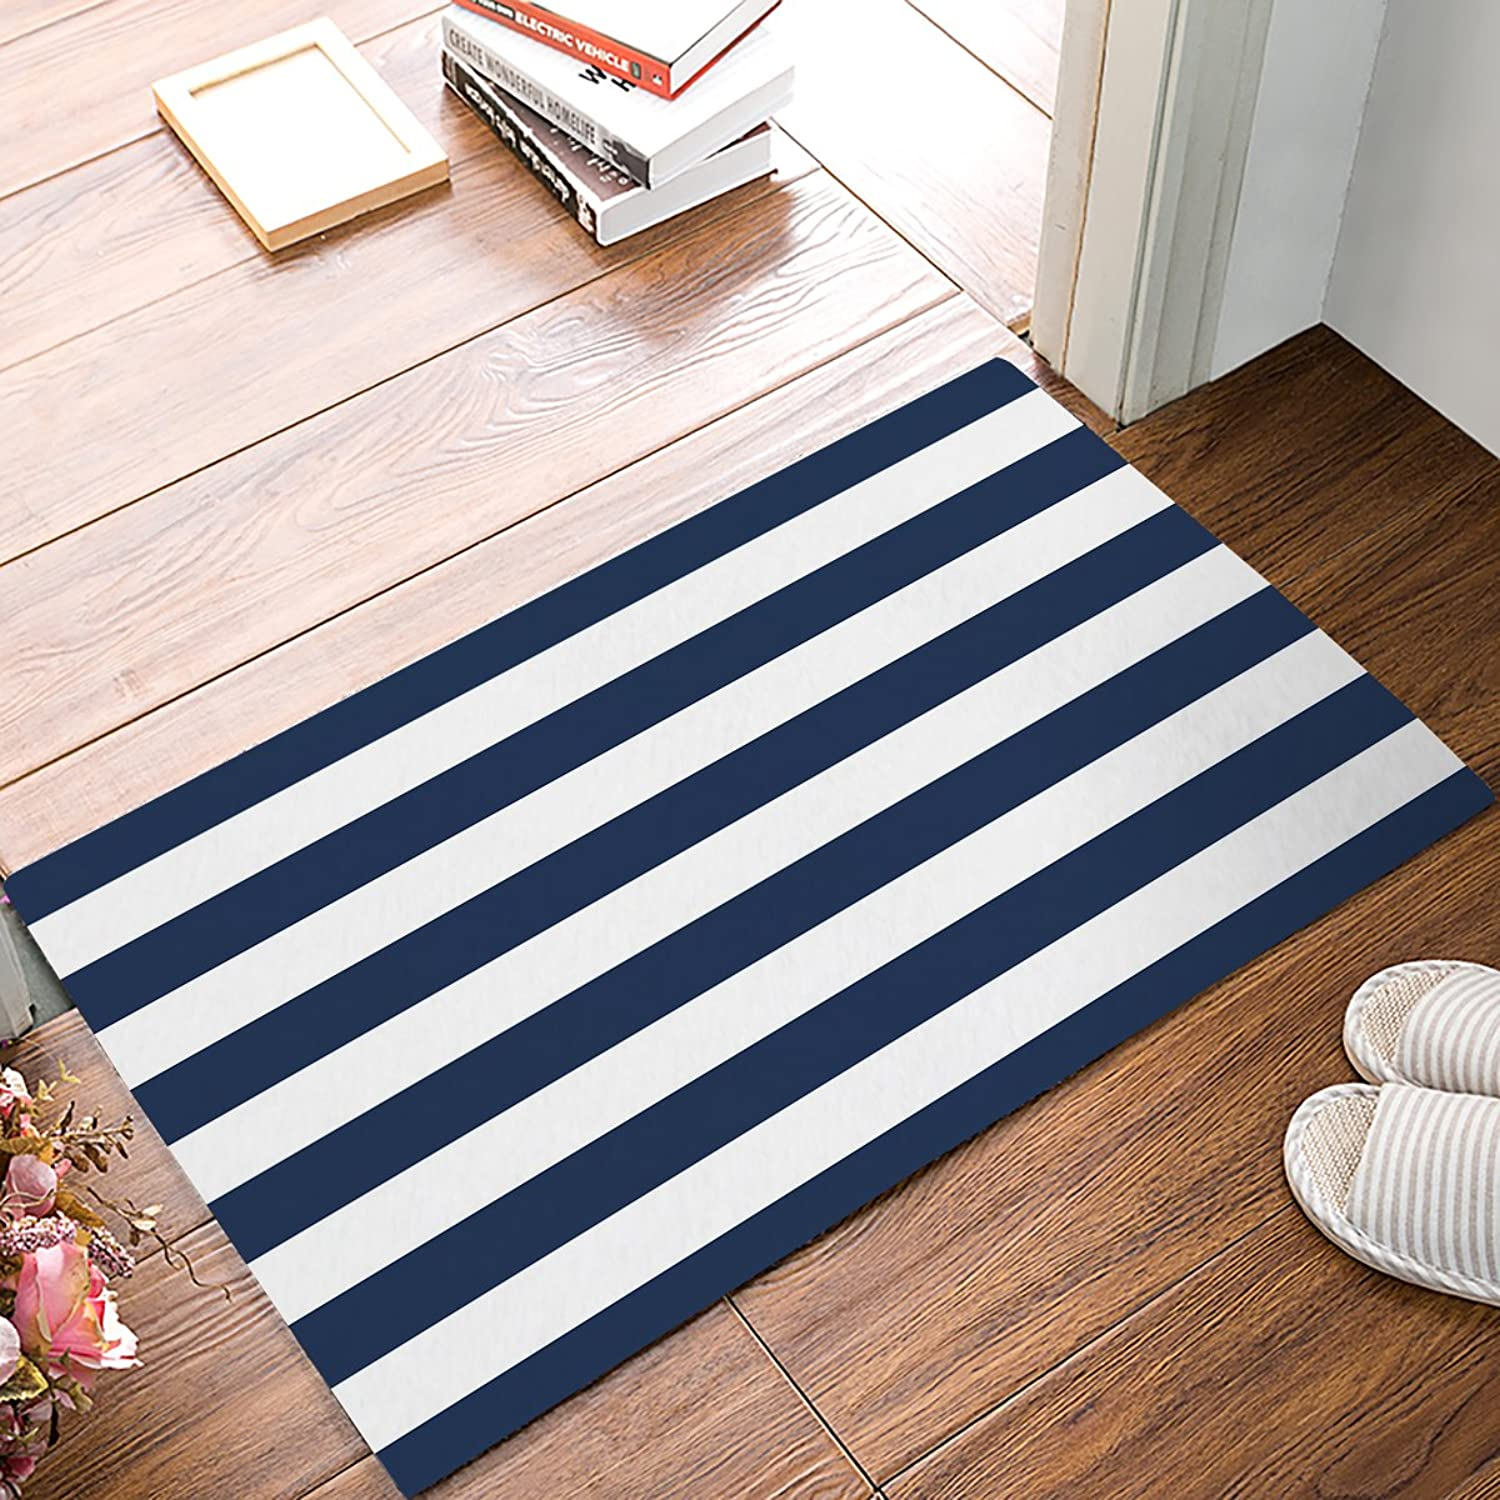 Family Decor Doormat for Entrance Way Indoor Bathroom Front Door Area Floor Mat Rugs Rubber Non Slip Waterproof Absorb Kitchen Runner Carpet, Classic Stripes Navy bluee (23.6 x15.7 )